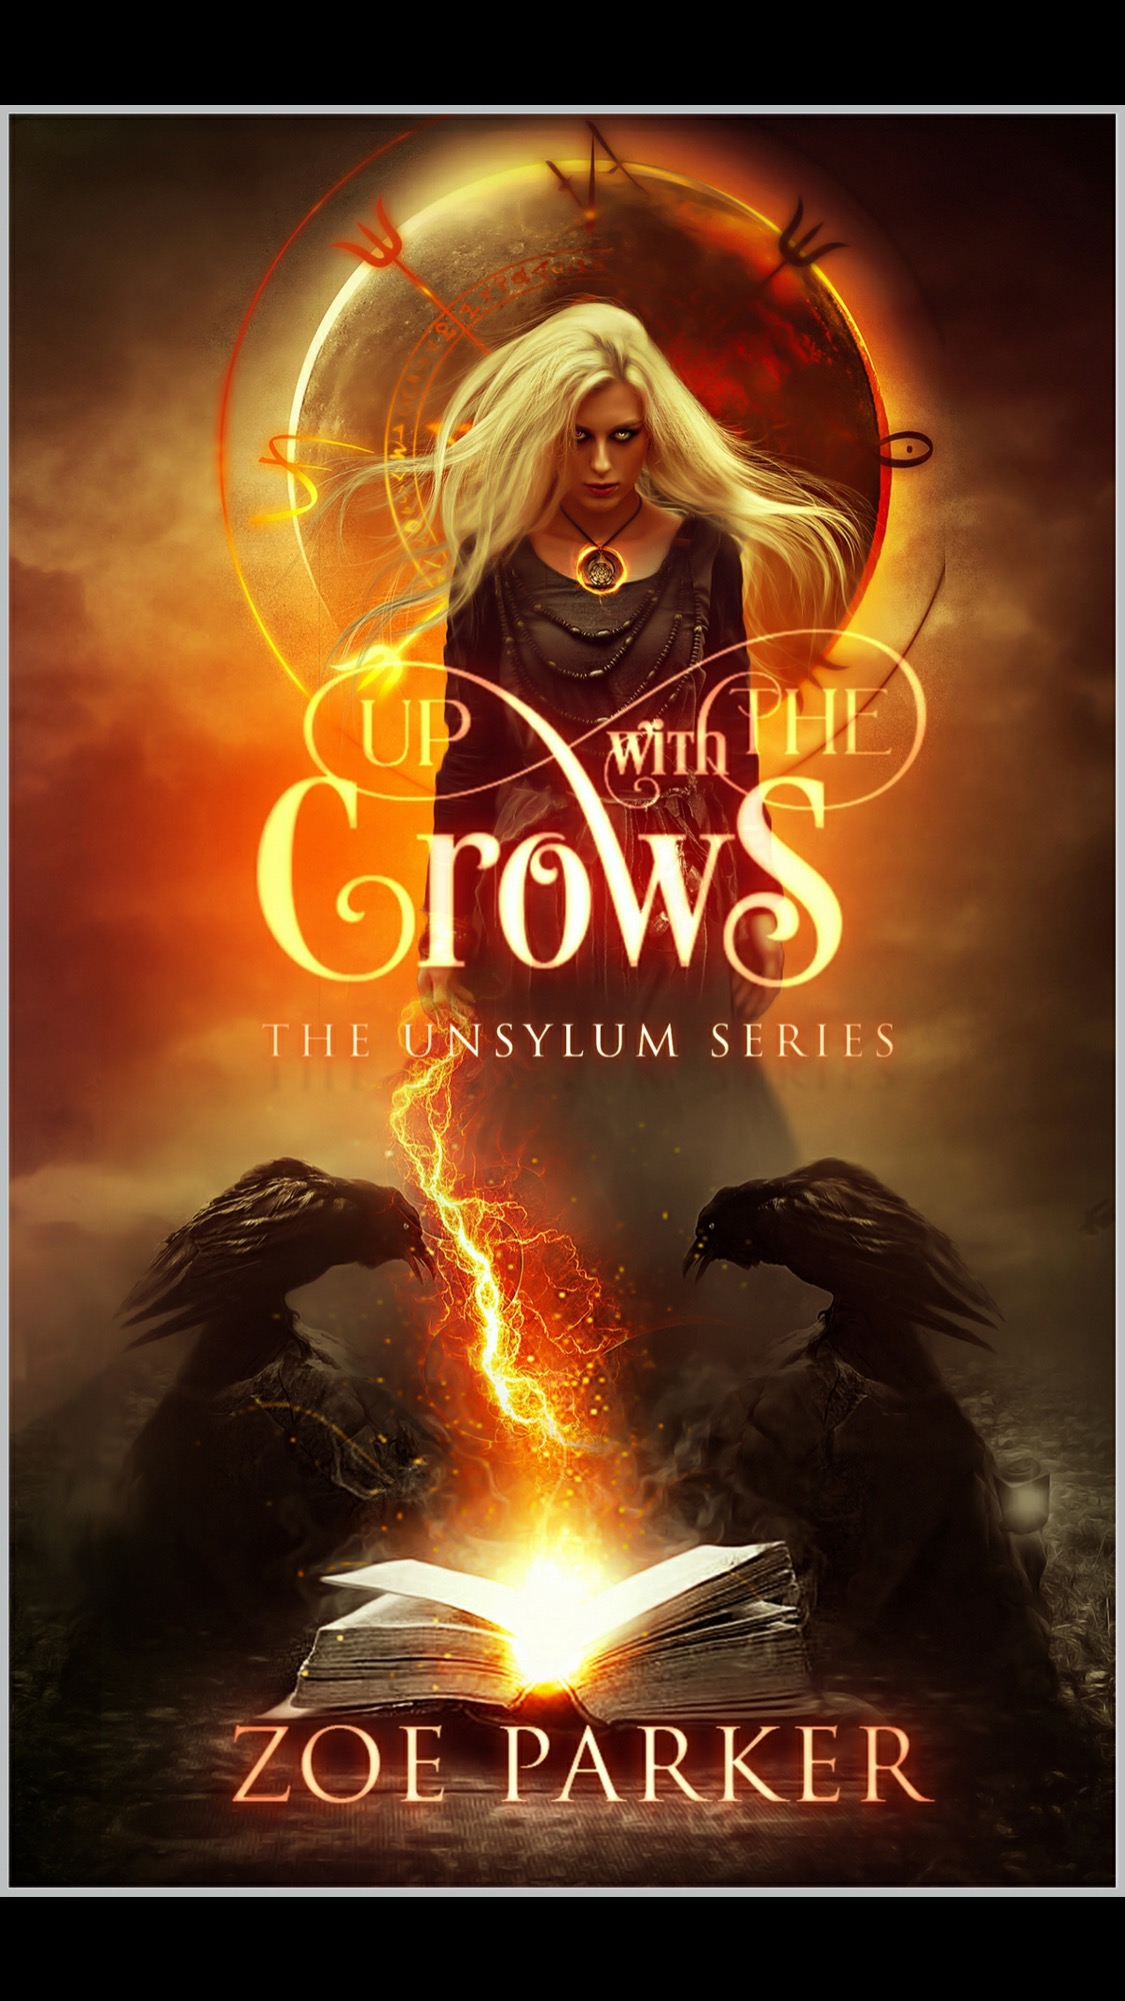 Up With The Crows by Zoe Parker – A Book Review